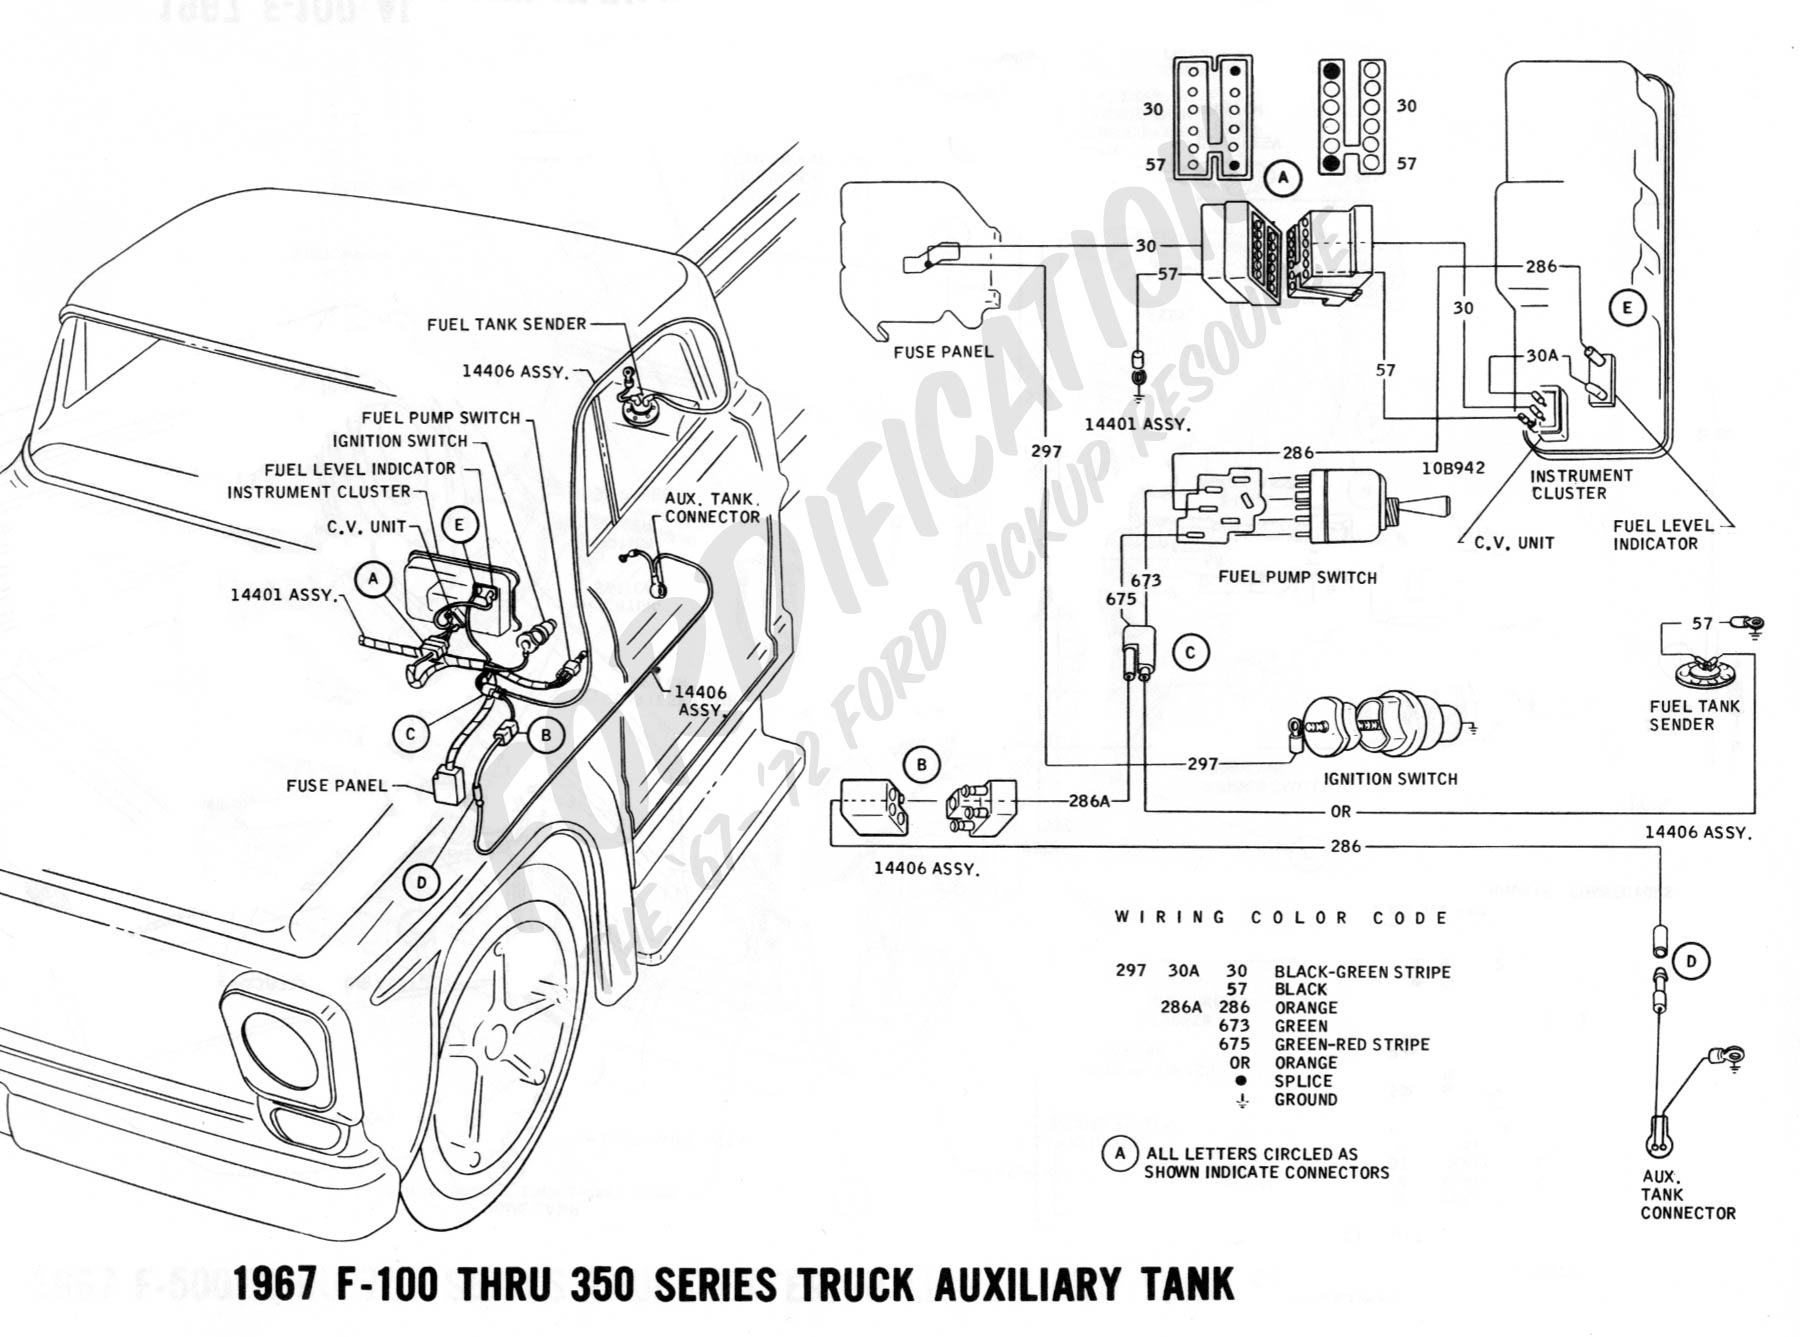 72 F250 Wiring Diagram on 72 chevy alternator wiring diagram